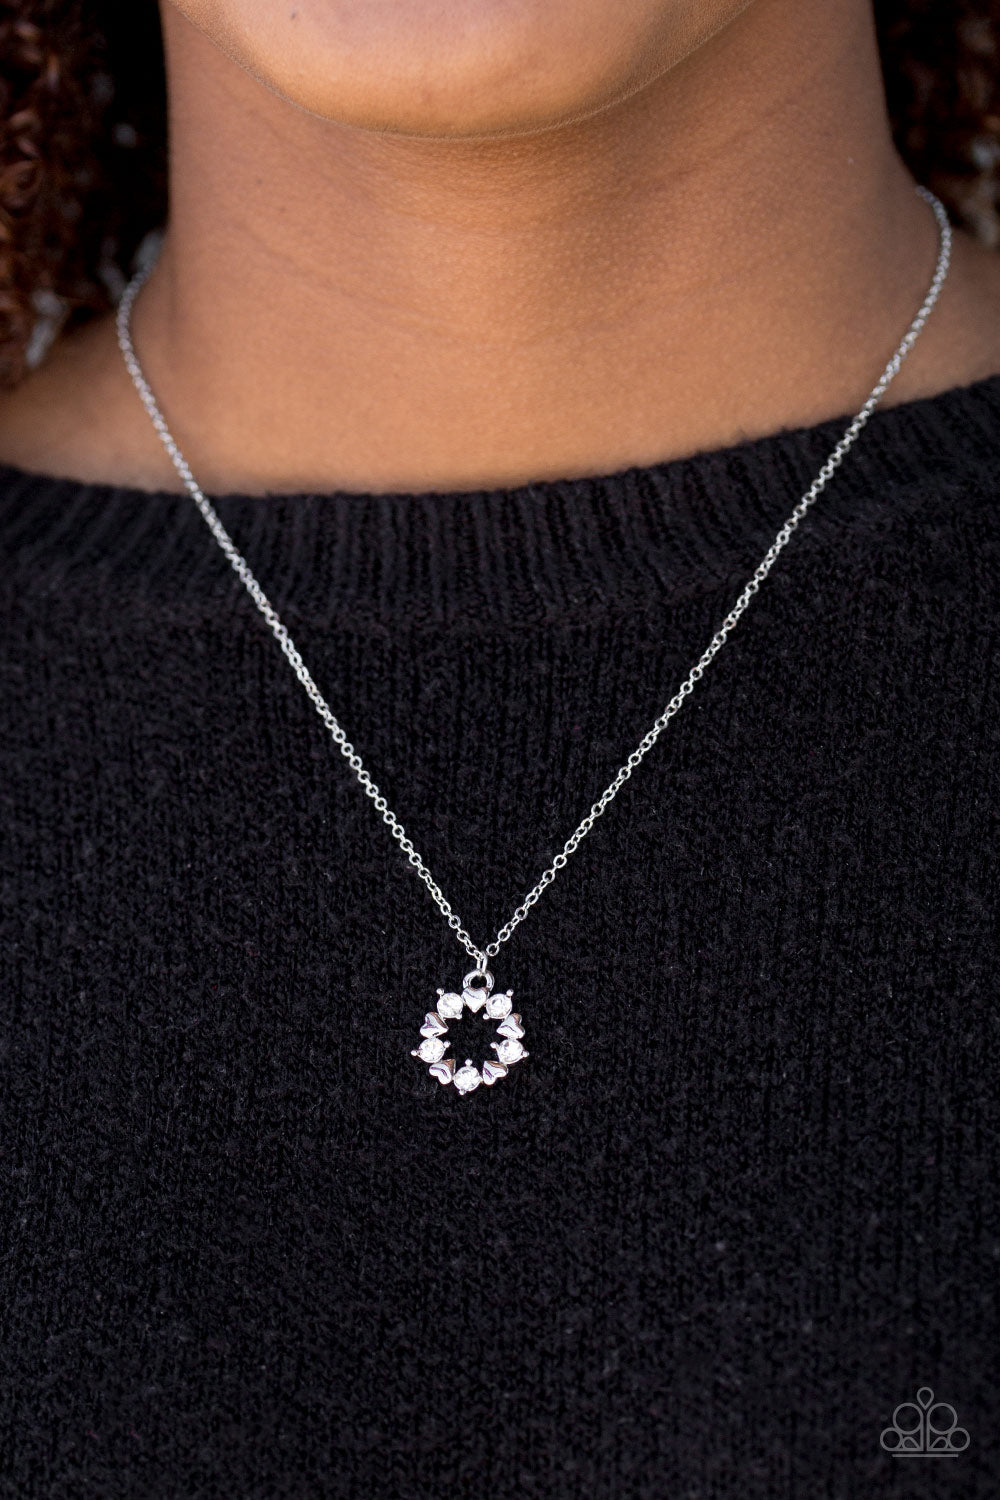 Dainty silver hearts and glittery white rhinestones join into a round dainty pendant below the collar for a romantic look. Features an adjustable clasp closure.  Sold as one individual necklace. Includes one pair of matching earrings.  Always nickel and lead free.